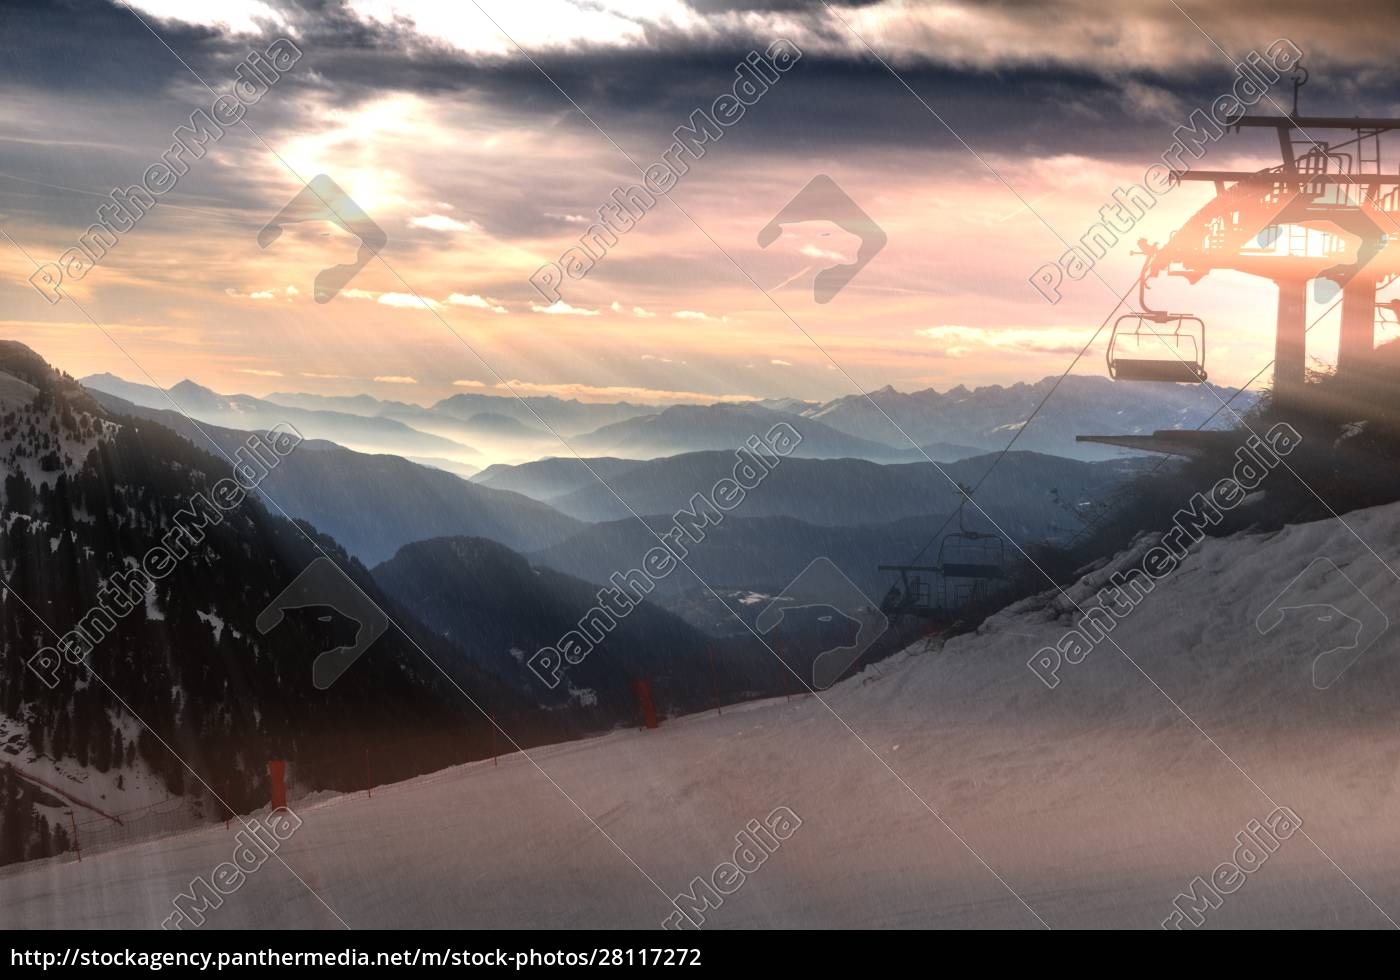 skiing, insouthern, tyrol - 28117272